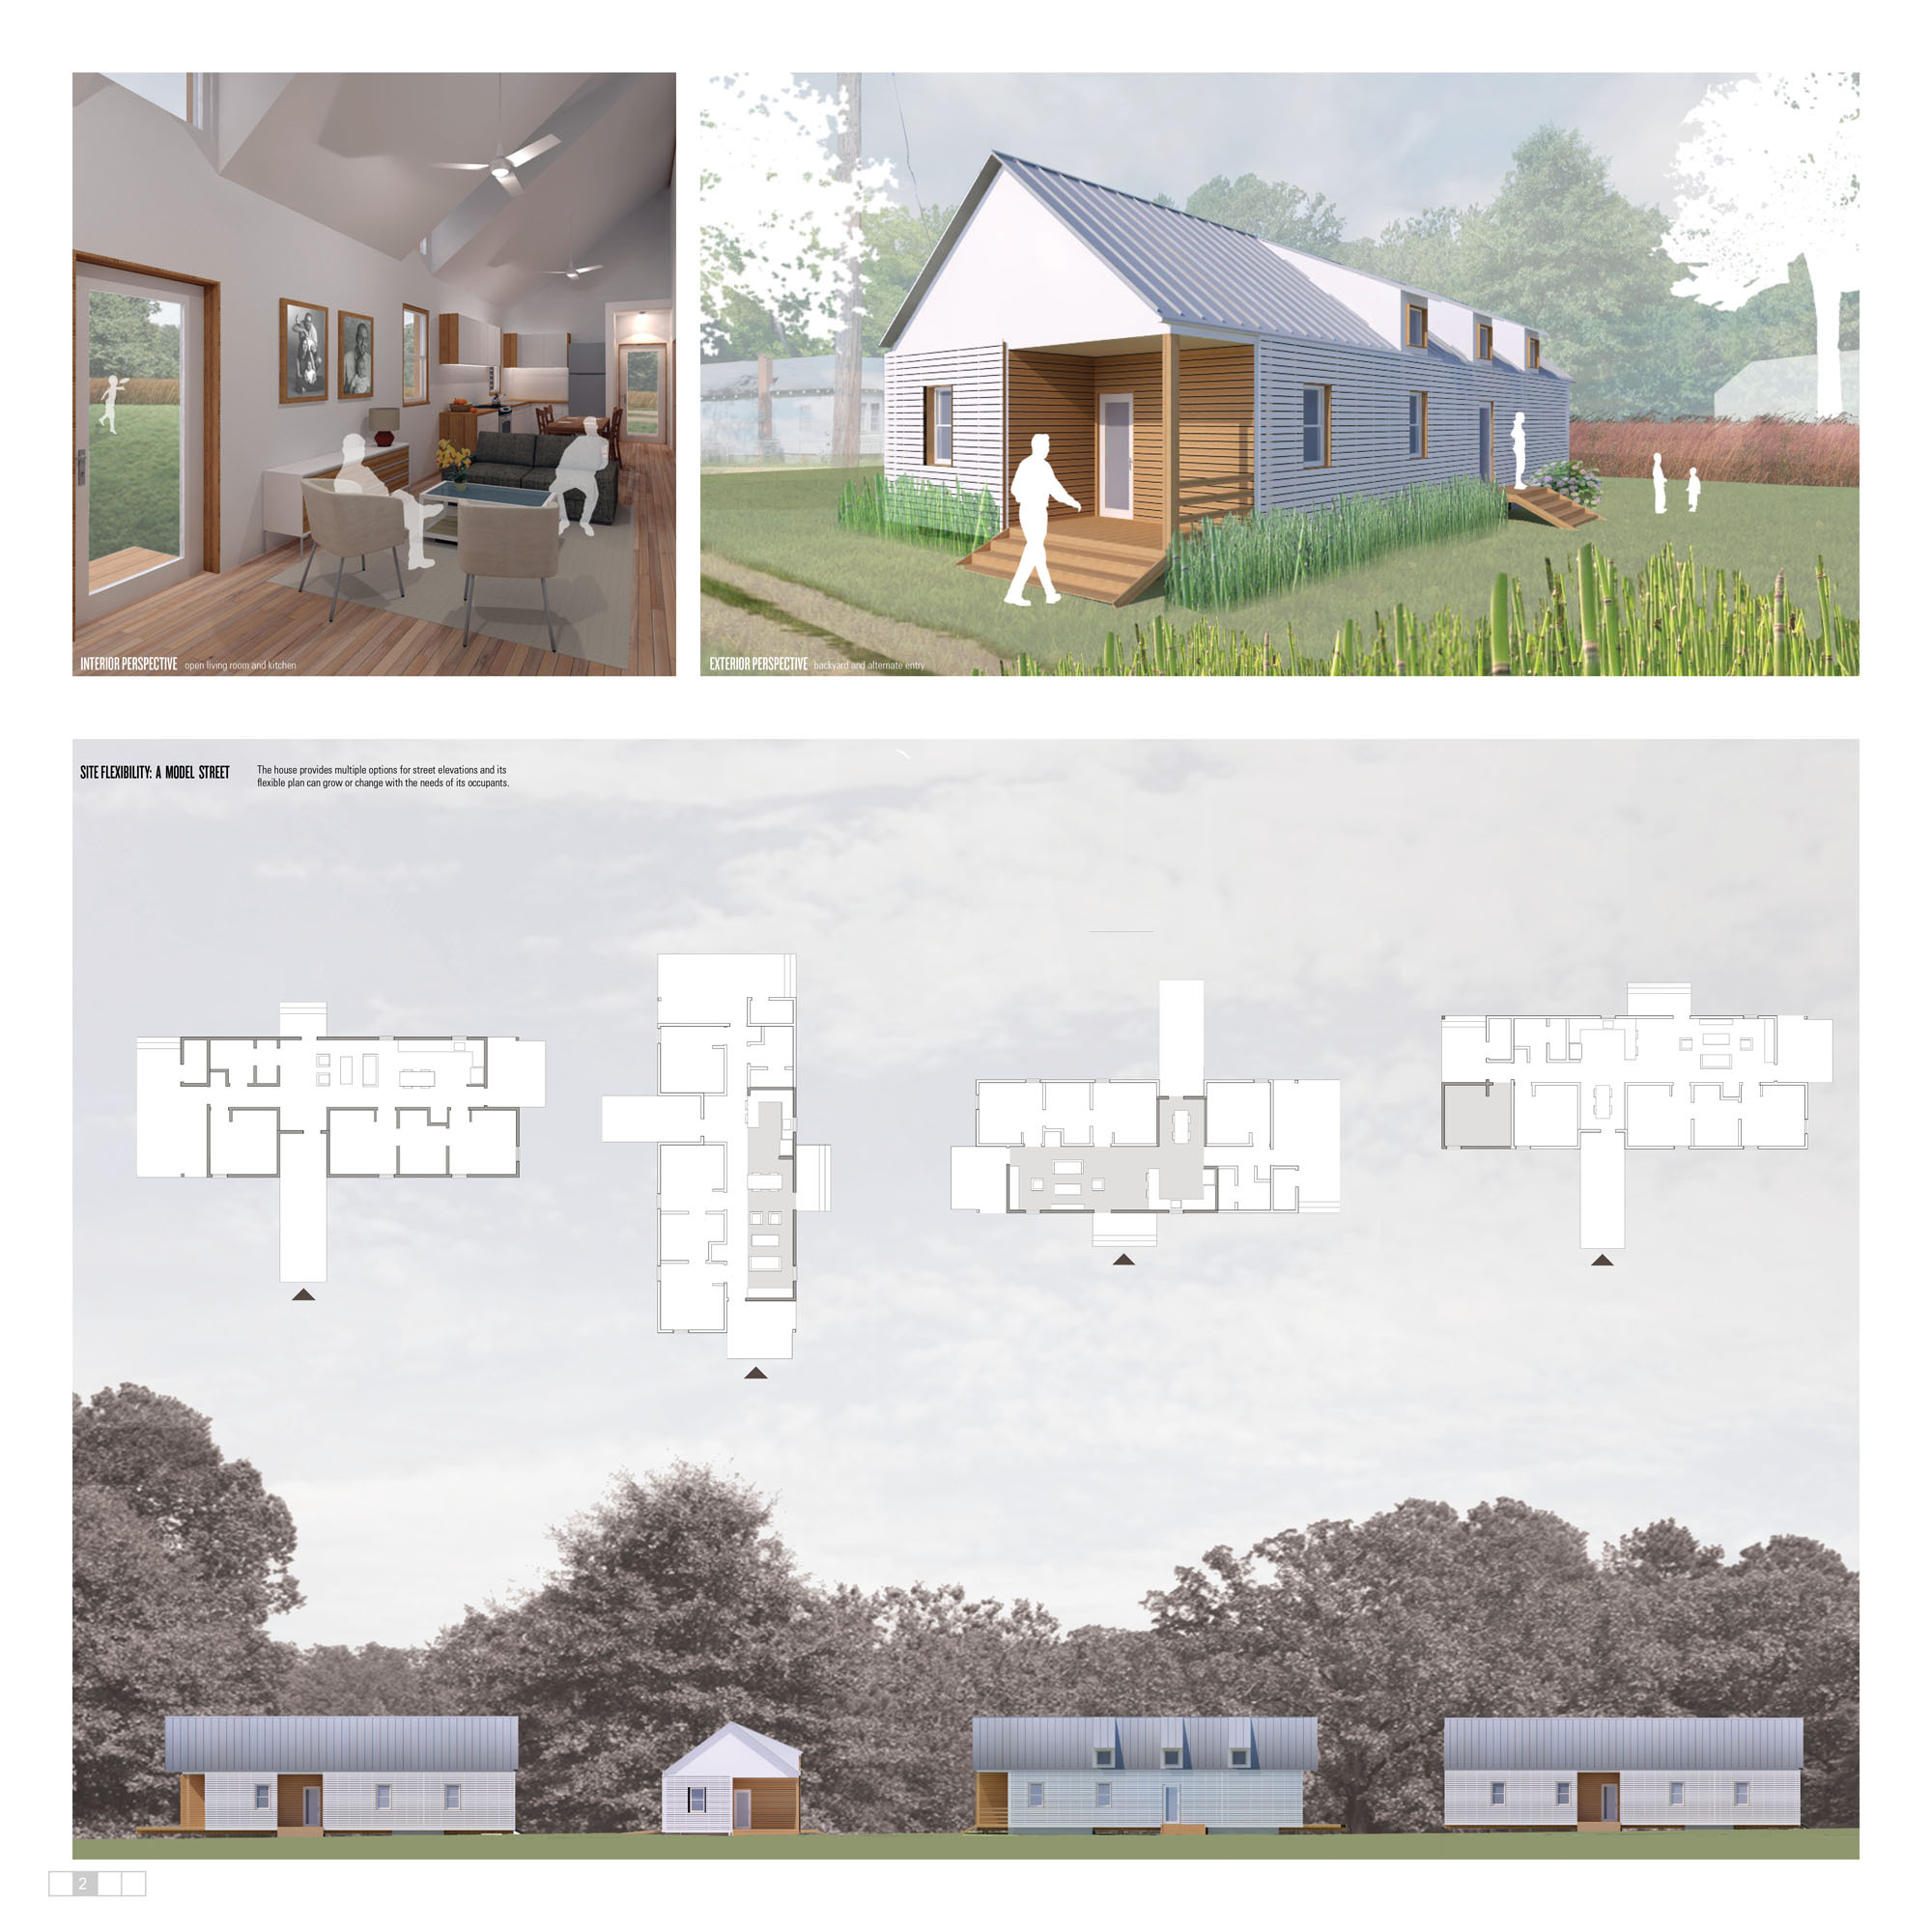 Gallery of winners of habitat for humanity 39 s sustainable for Architecture house design competitions